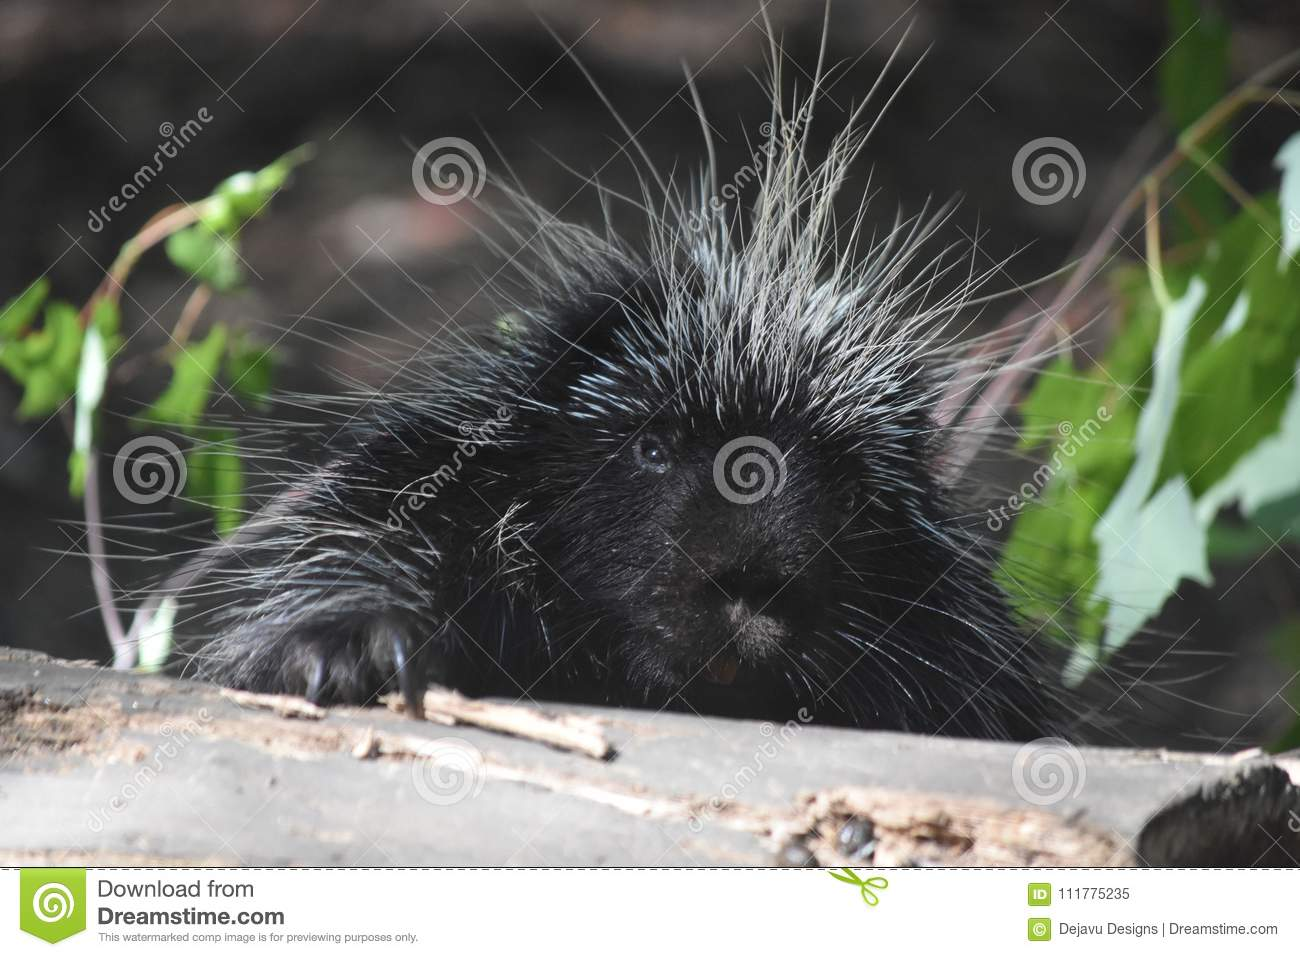 Cute white and black porcupine climbing over a log